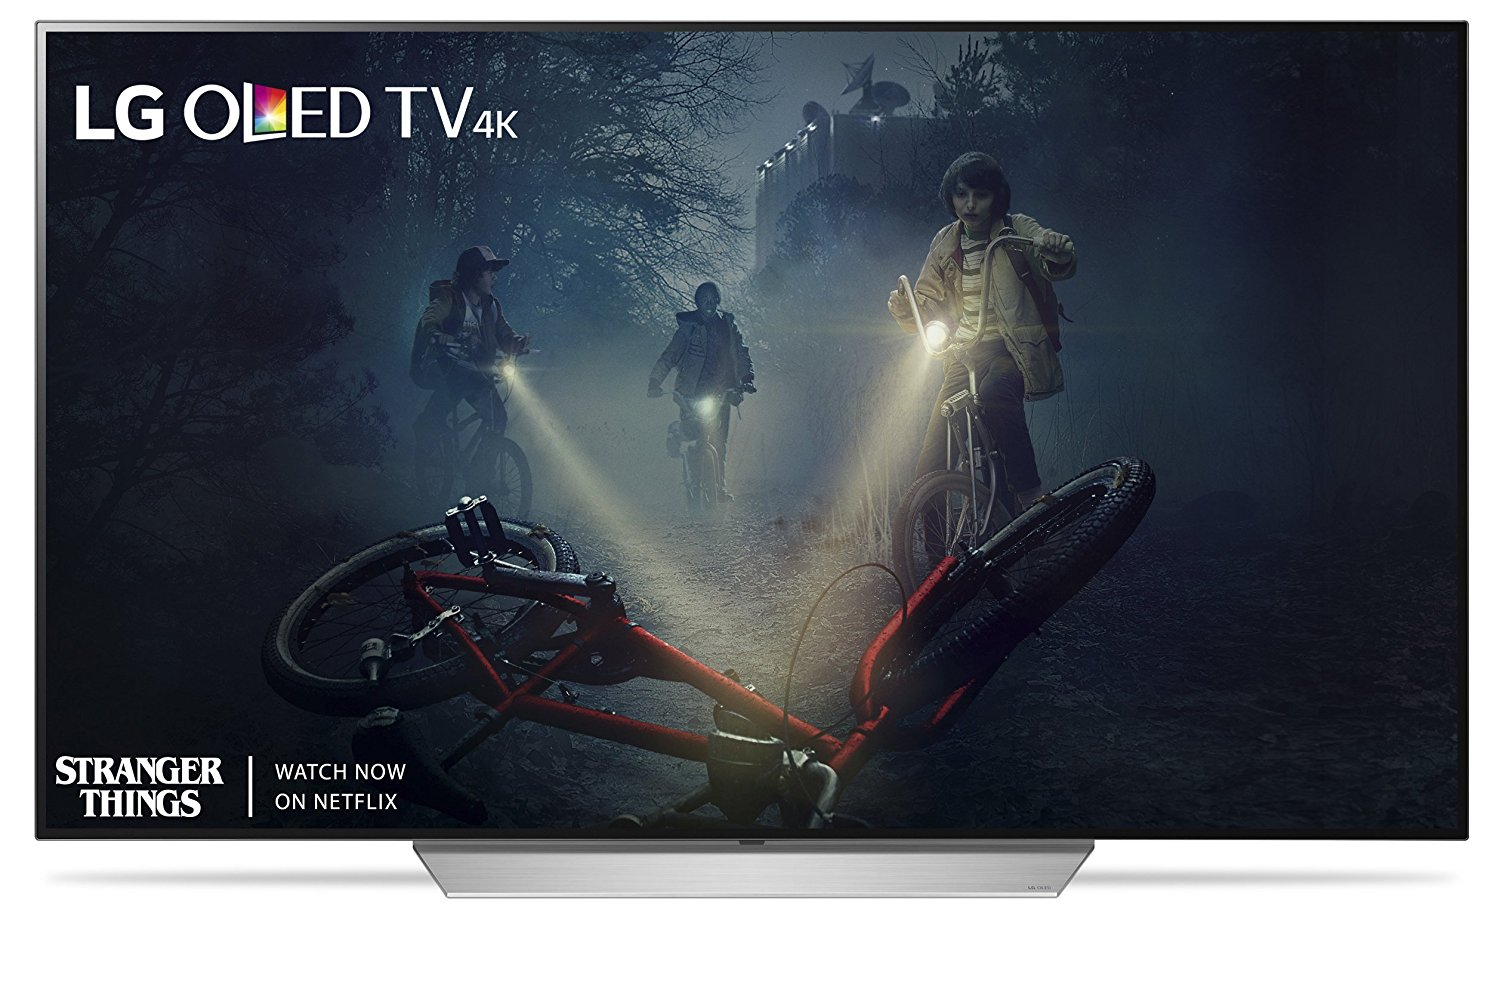 5 Budget To Best 4k Hdr Gaming Tv For Xbox One X